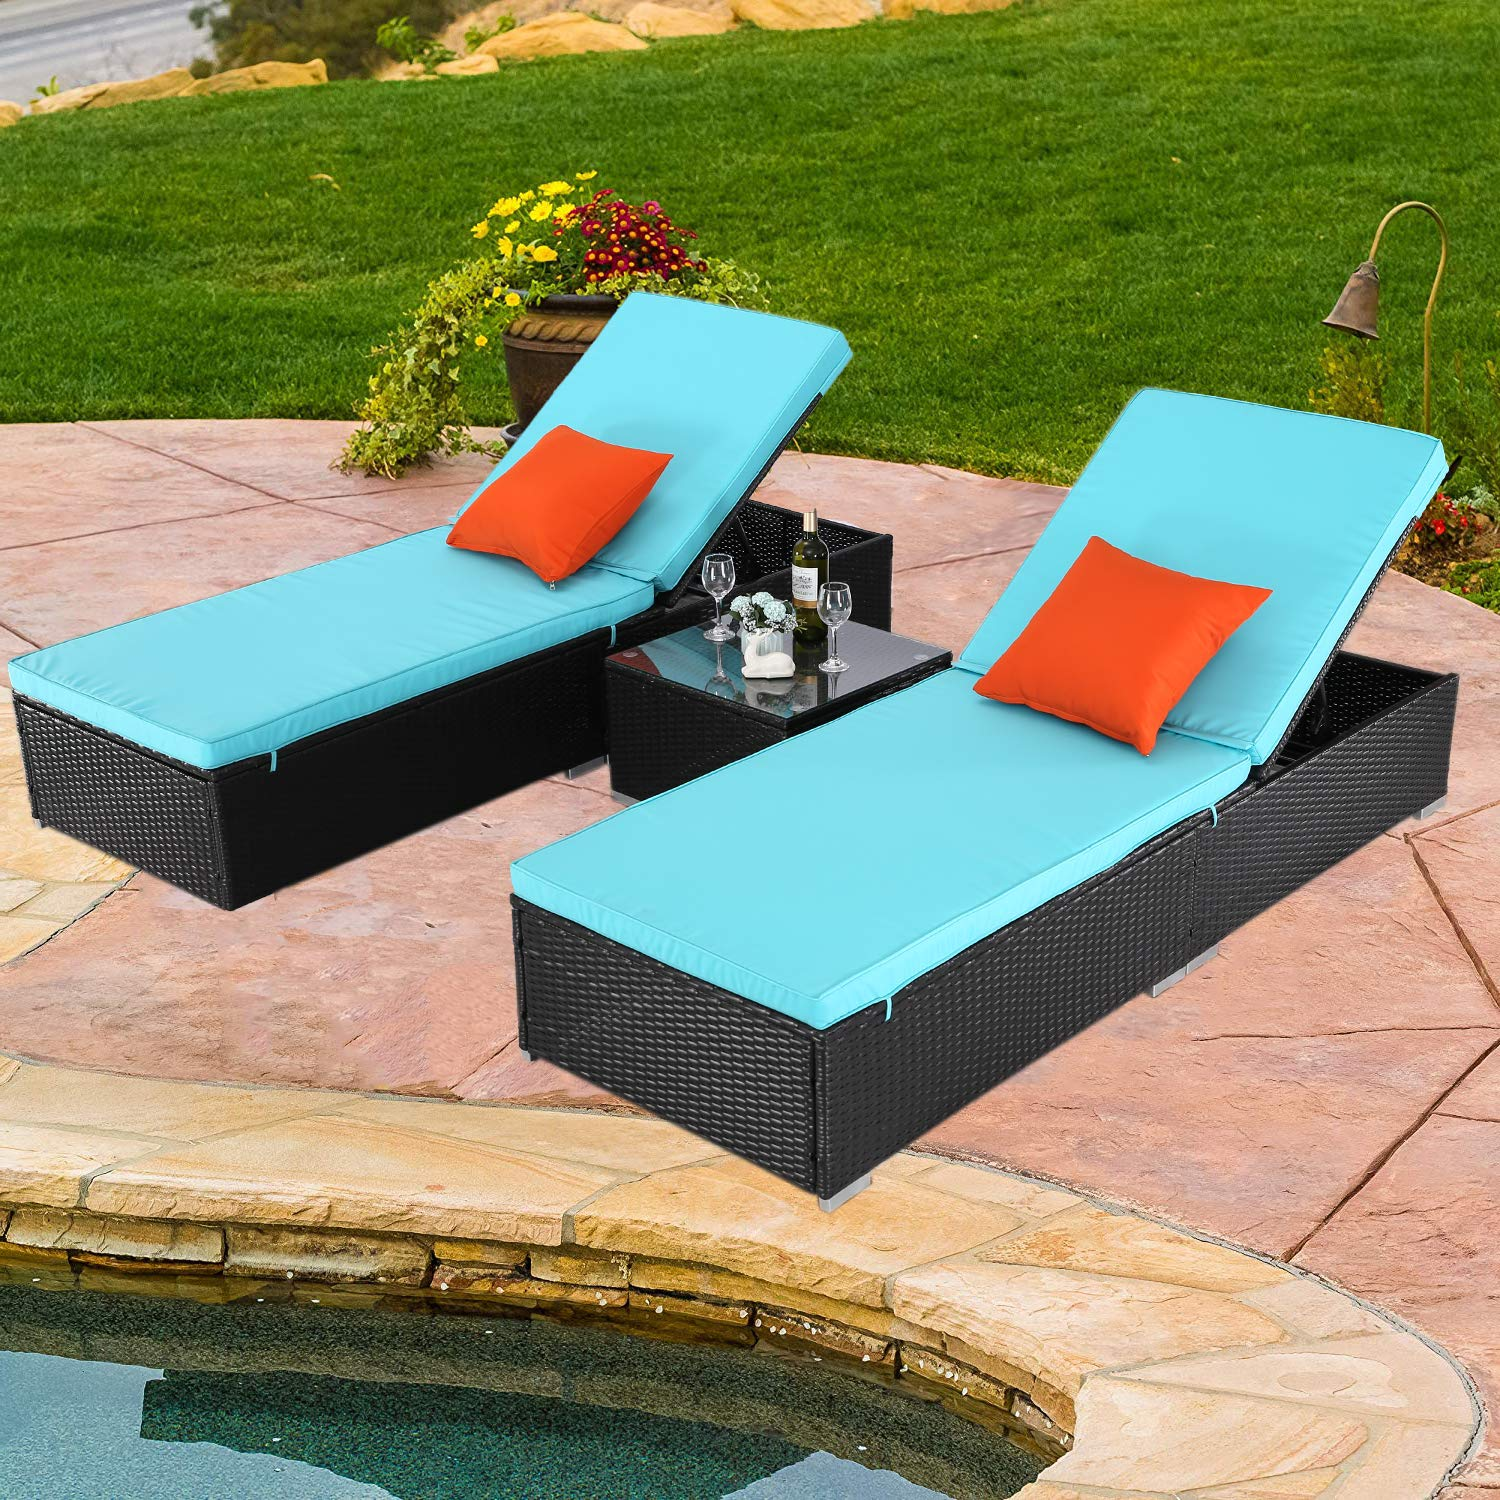 Do4U 3 Pcs Outdoor Patio Synthetic Adjustable Rattan Wicker Furniture Pool Chaise Lounge Chair Set with Table - EXP Rattan with Turquoise Cover (7223-EXP) by Do4U